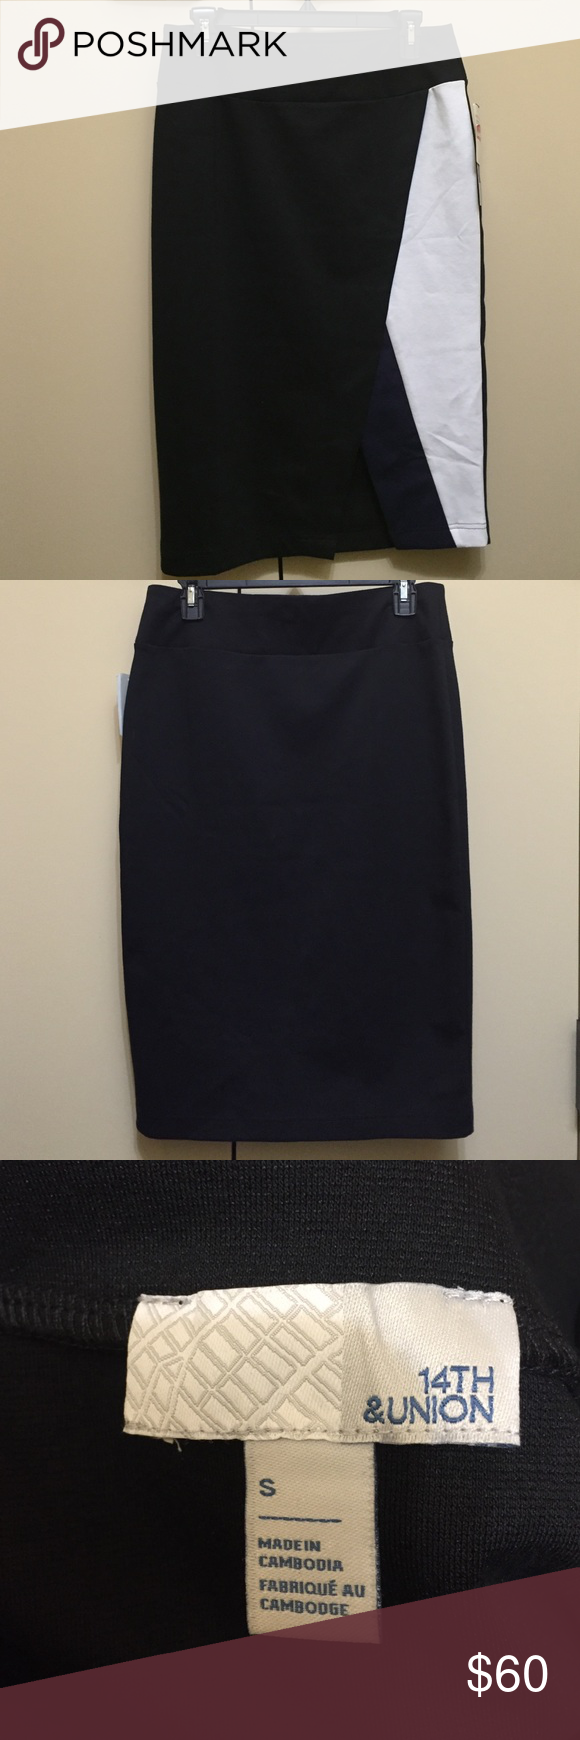 14th & Union Black Combo Pencil Skirt 14th & Union Black Combo Pencil Skirt is a perfect addition to your fall wardrobe! Soft and stretchy material. Black with navy and white along left side seam. Pair it with some nude pumps and a sweater for the office or a nice cami and some booties for date night! No trades. Price is firm. NWT 14th & Union Skirts Pencil